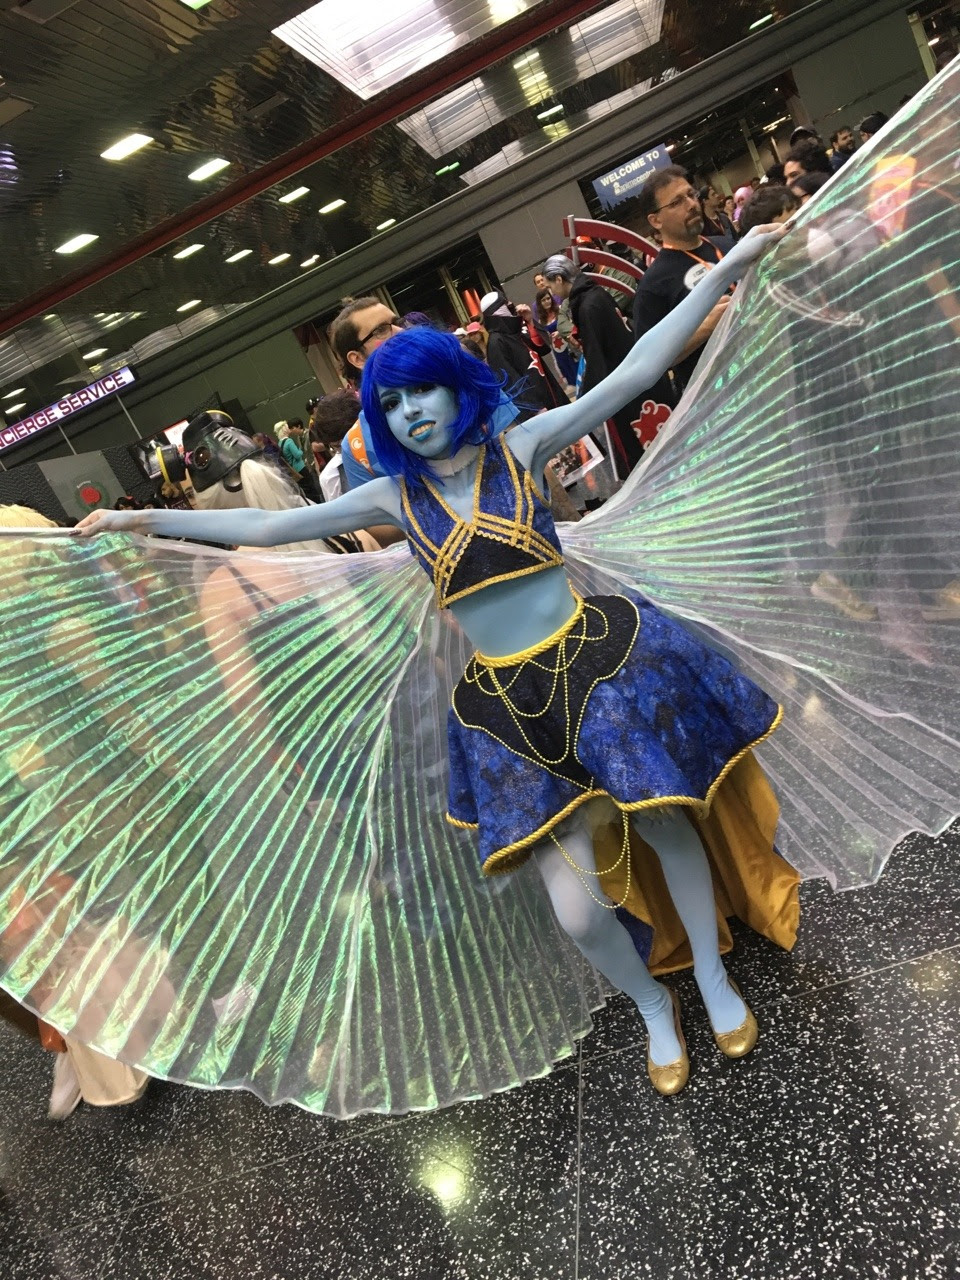 some photos i got of cosplayers during anime central!!!